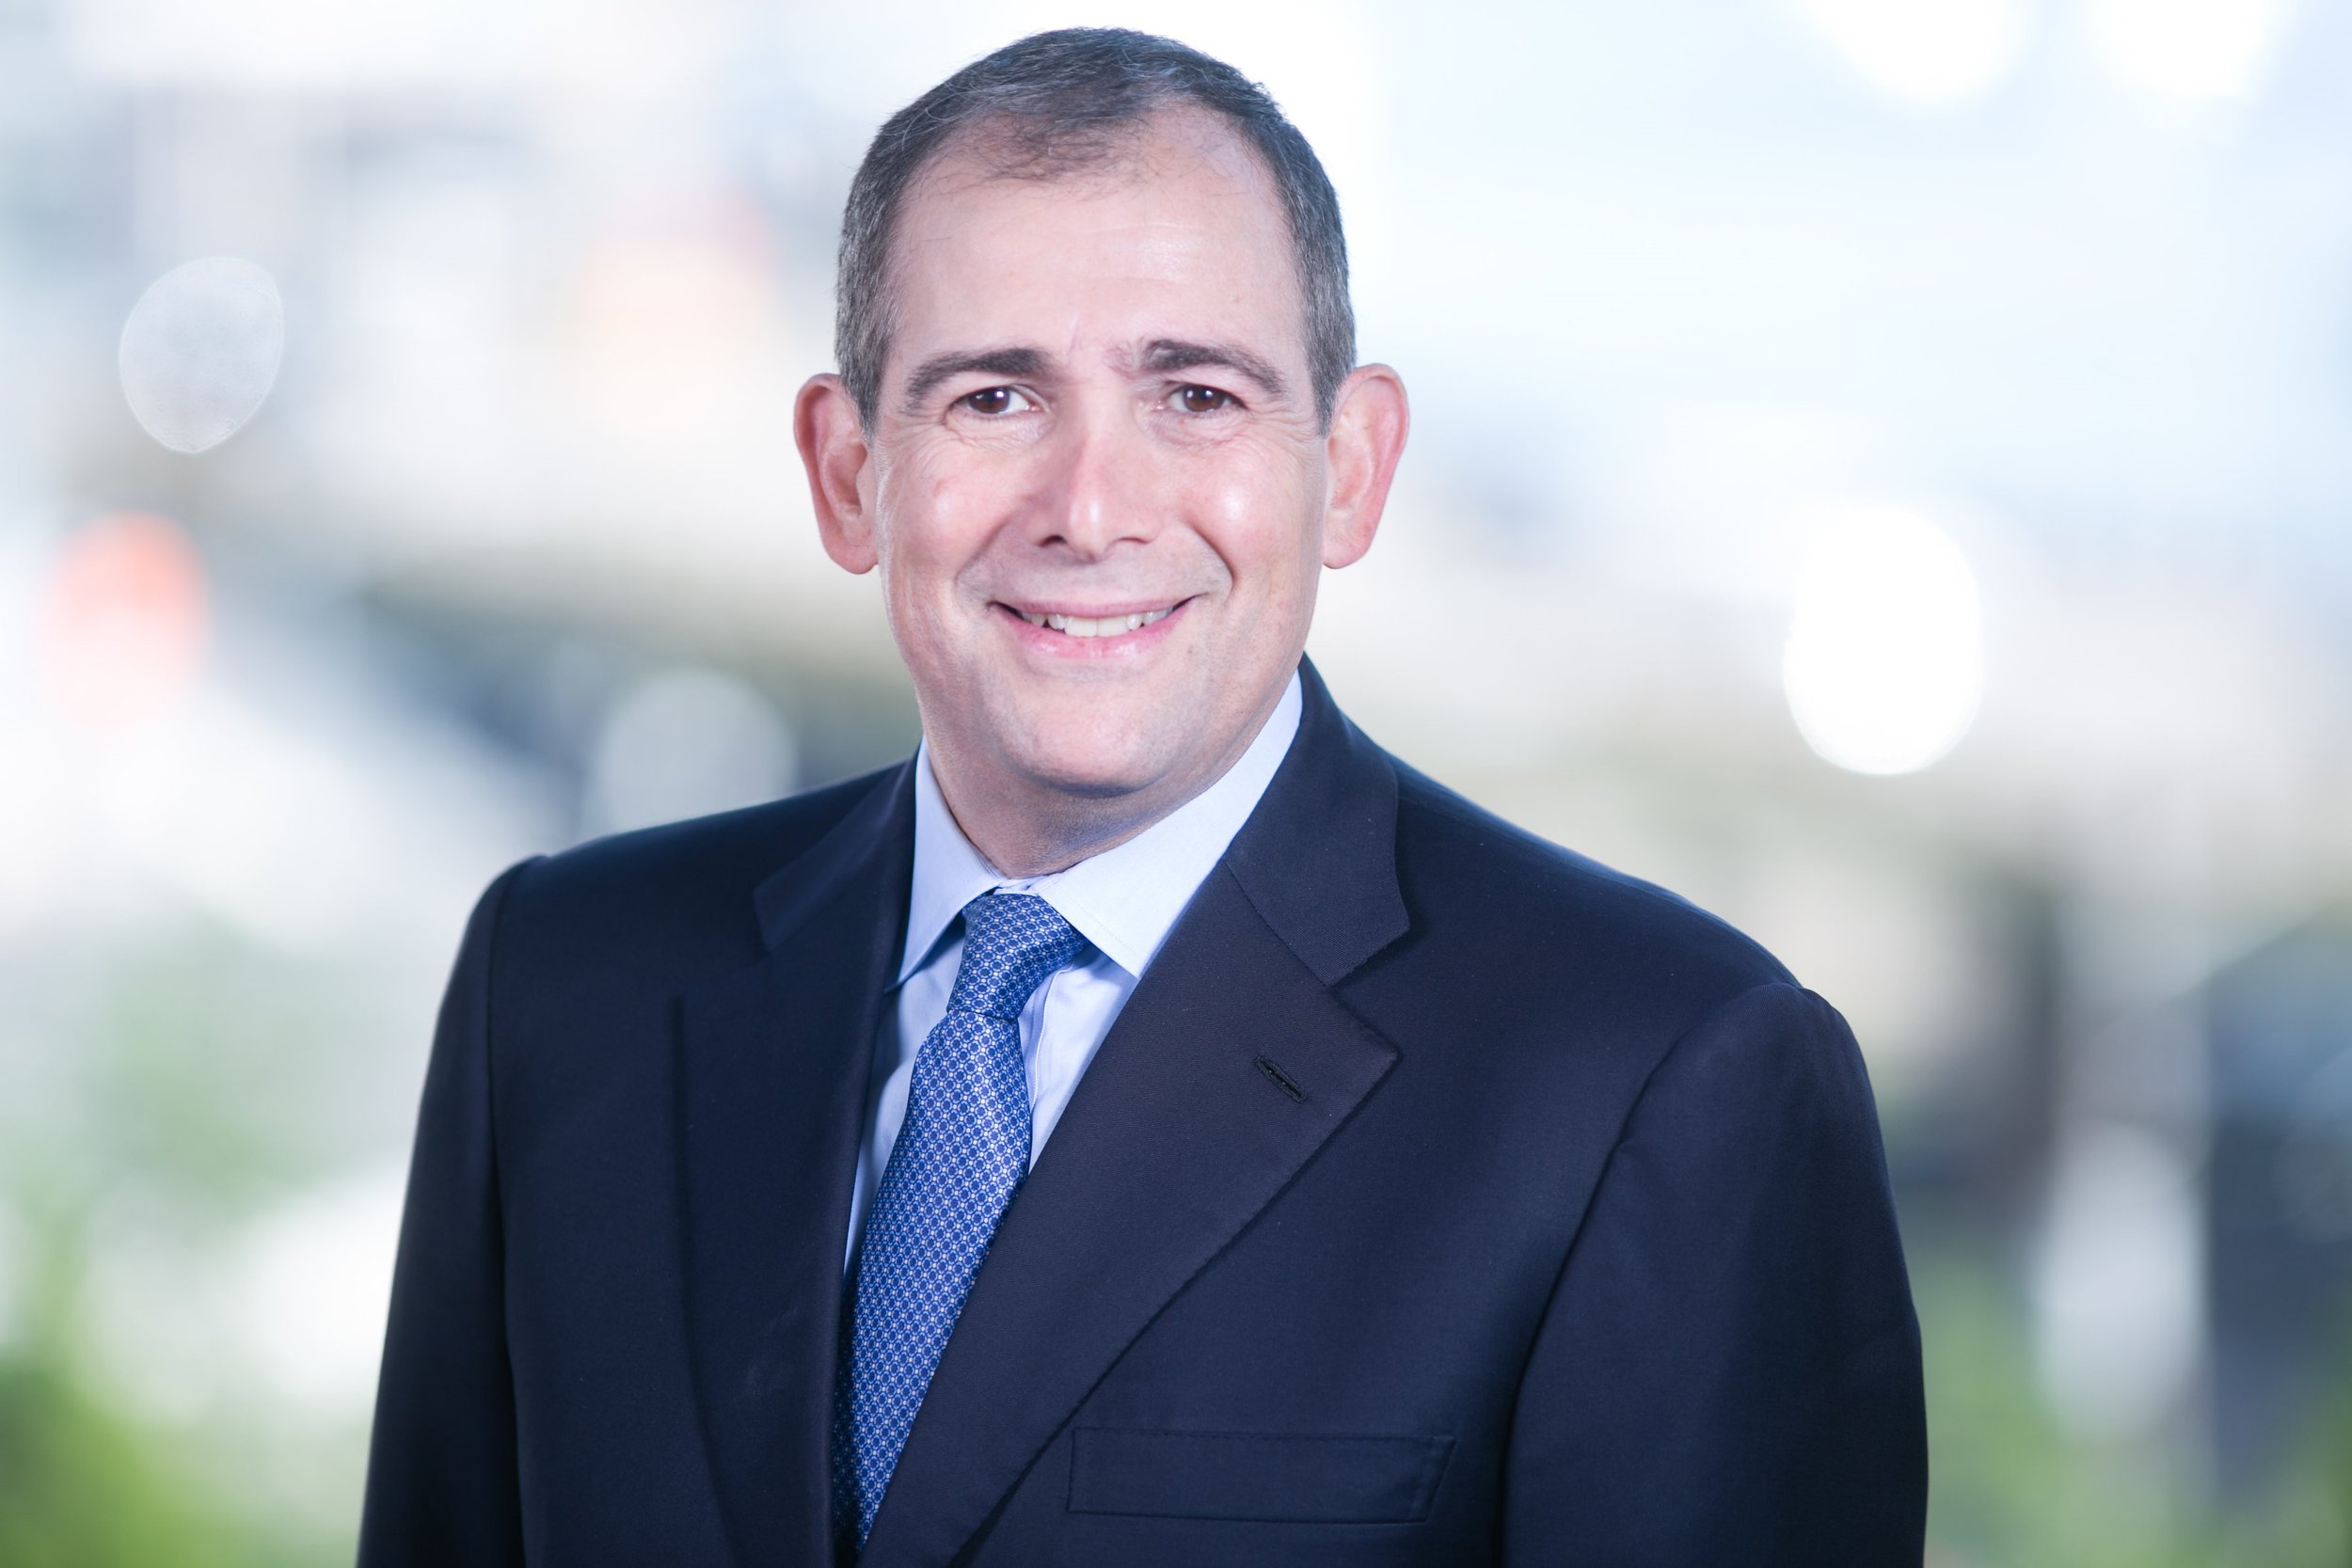 Photo of Arthur Backal, CEO of Backal Hospitality Group